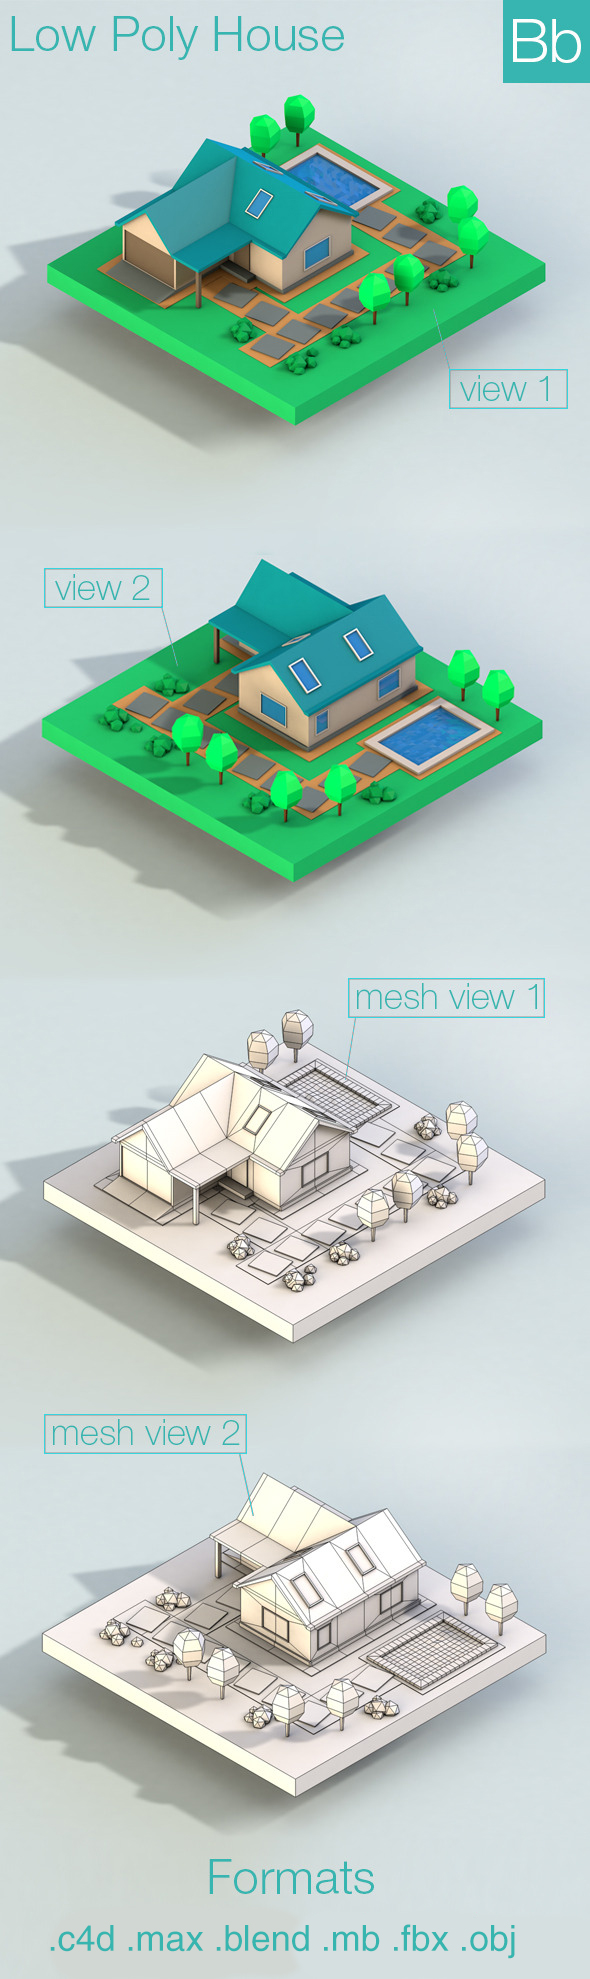 Low Poly House Building - 3DOcean Item for Sale